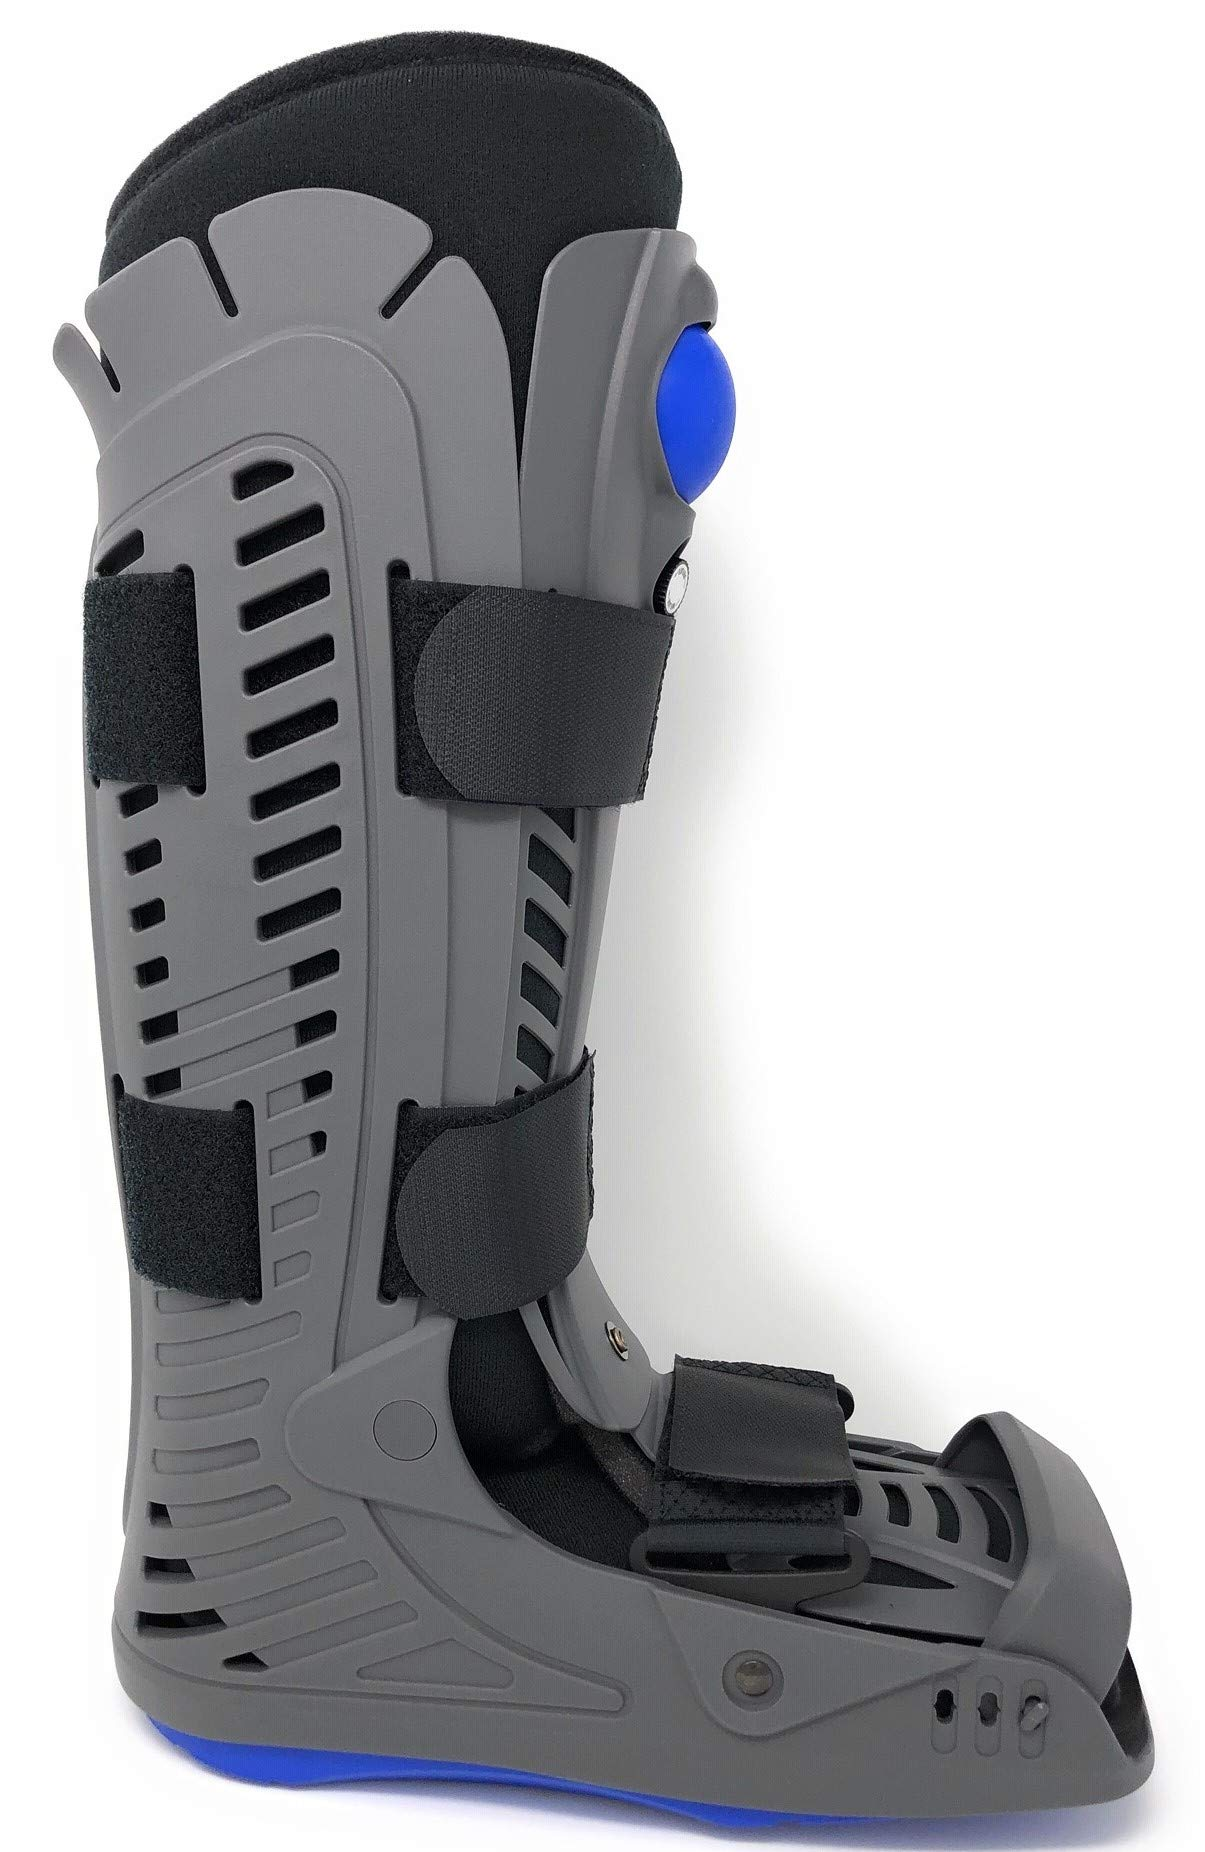 SB High Top Closed Toe Air Medical Fracture Boot (Small) by SB SUPERIORBRACES